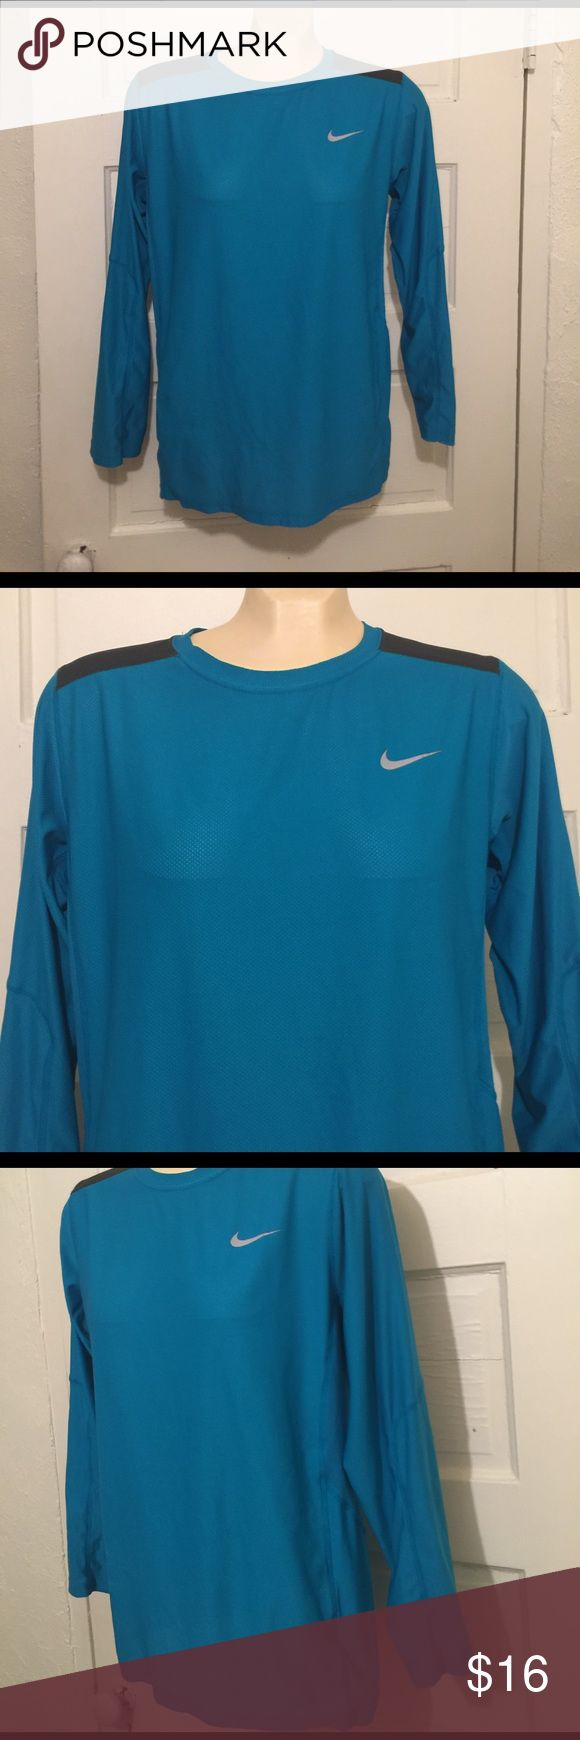 NIKE DRI- FIT WOMENS RUNNING TOP SIZE - XL NIKE DRI- FIT Women's Running Top * SIZE - XL  * Color - Turquoise * Long Sleeve  * Open boat neck Nike Dri-FIT Cool Breeze Women's Running Top keeps you dry, cool, and comfortable with super lightweight Dri-FIT fabric.  IN EXCELLENT CONDITION! Nike Tops